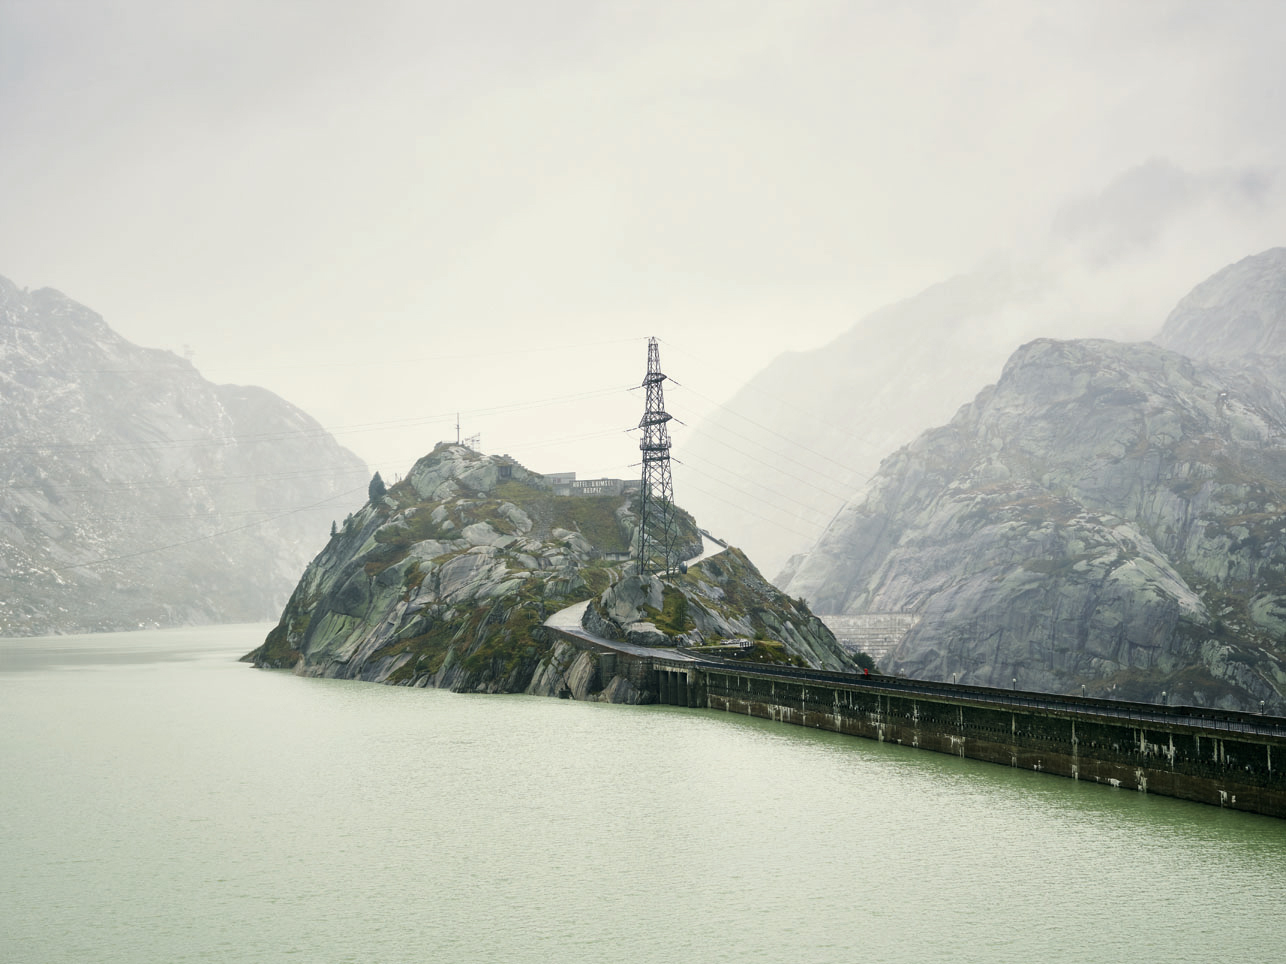 Grimsel Pass: the rocky outcrop of the Grimsel Hospice